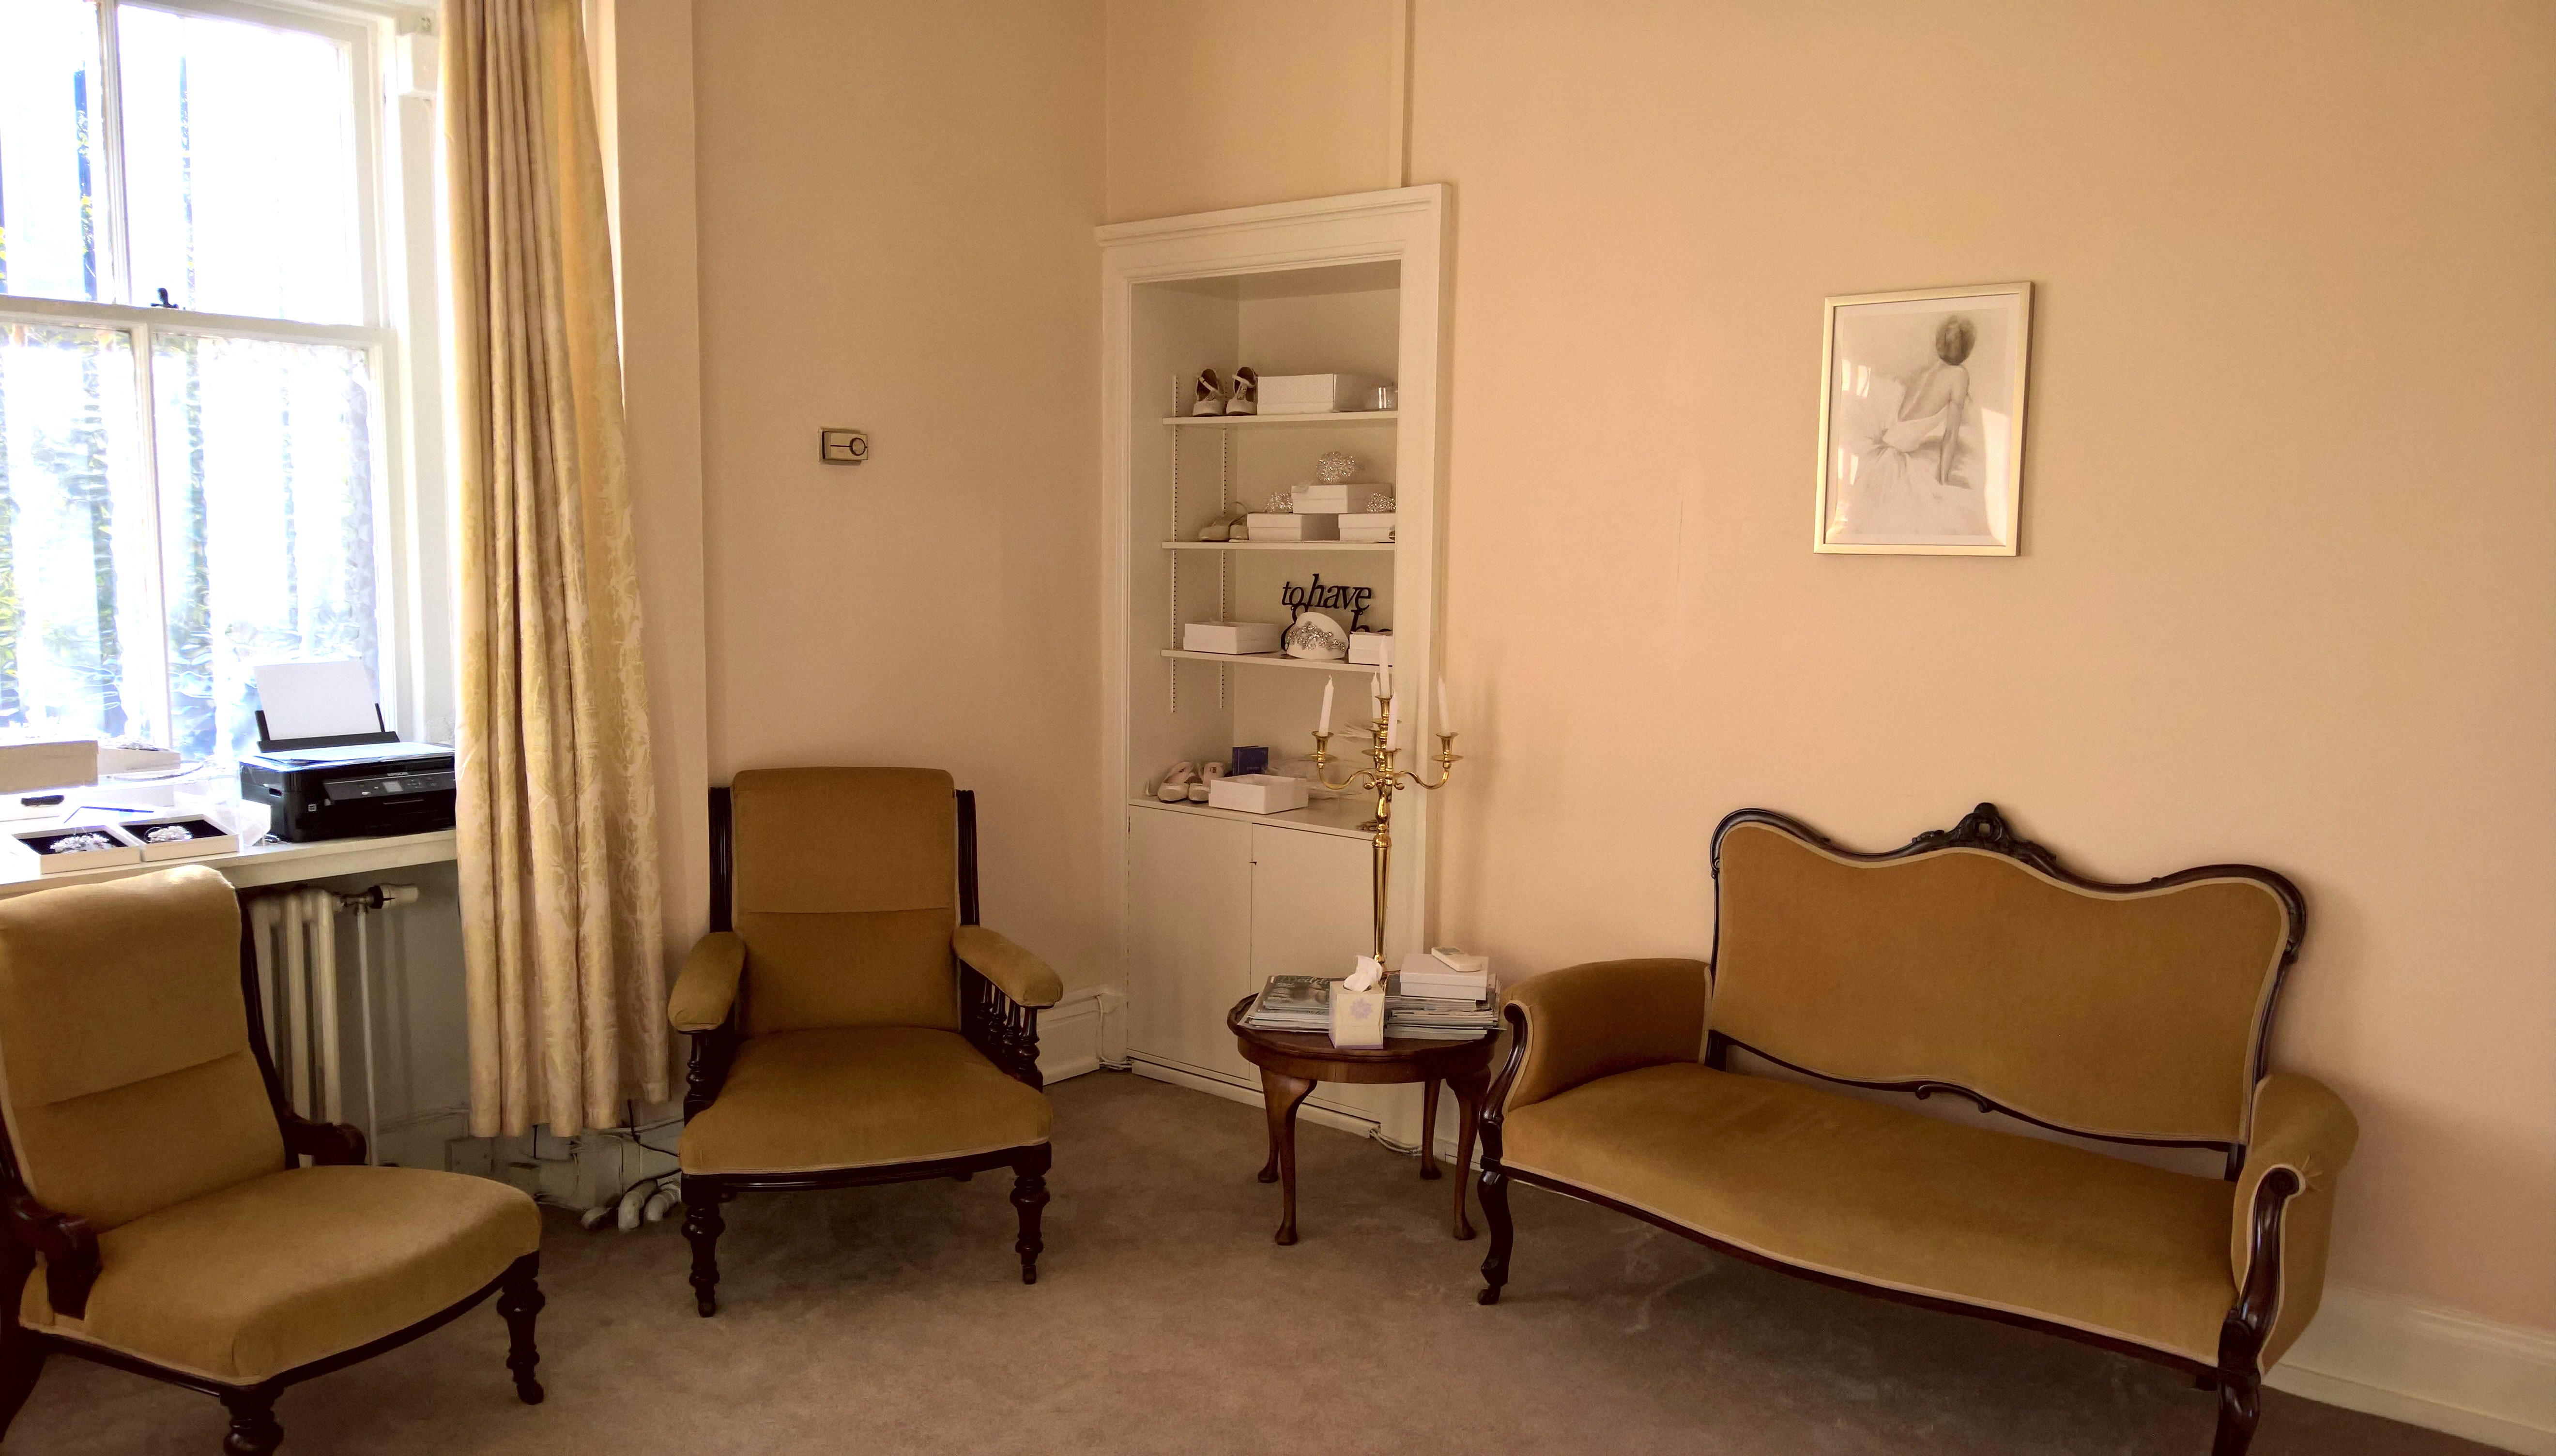 Nice comfy seats for your guests when they accompany you to Brides and Belles Boutique to help choose your wedding dress